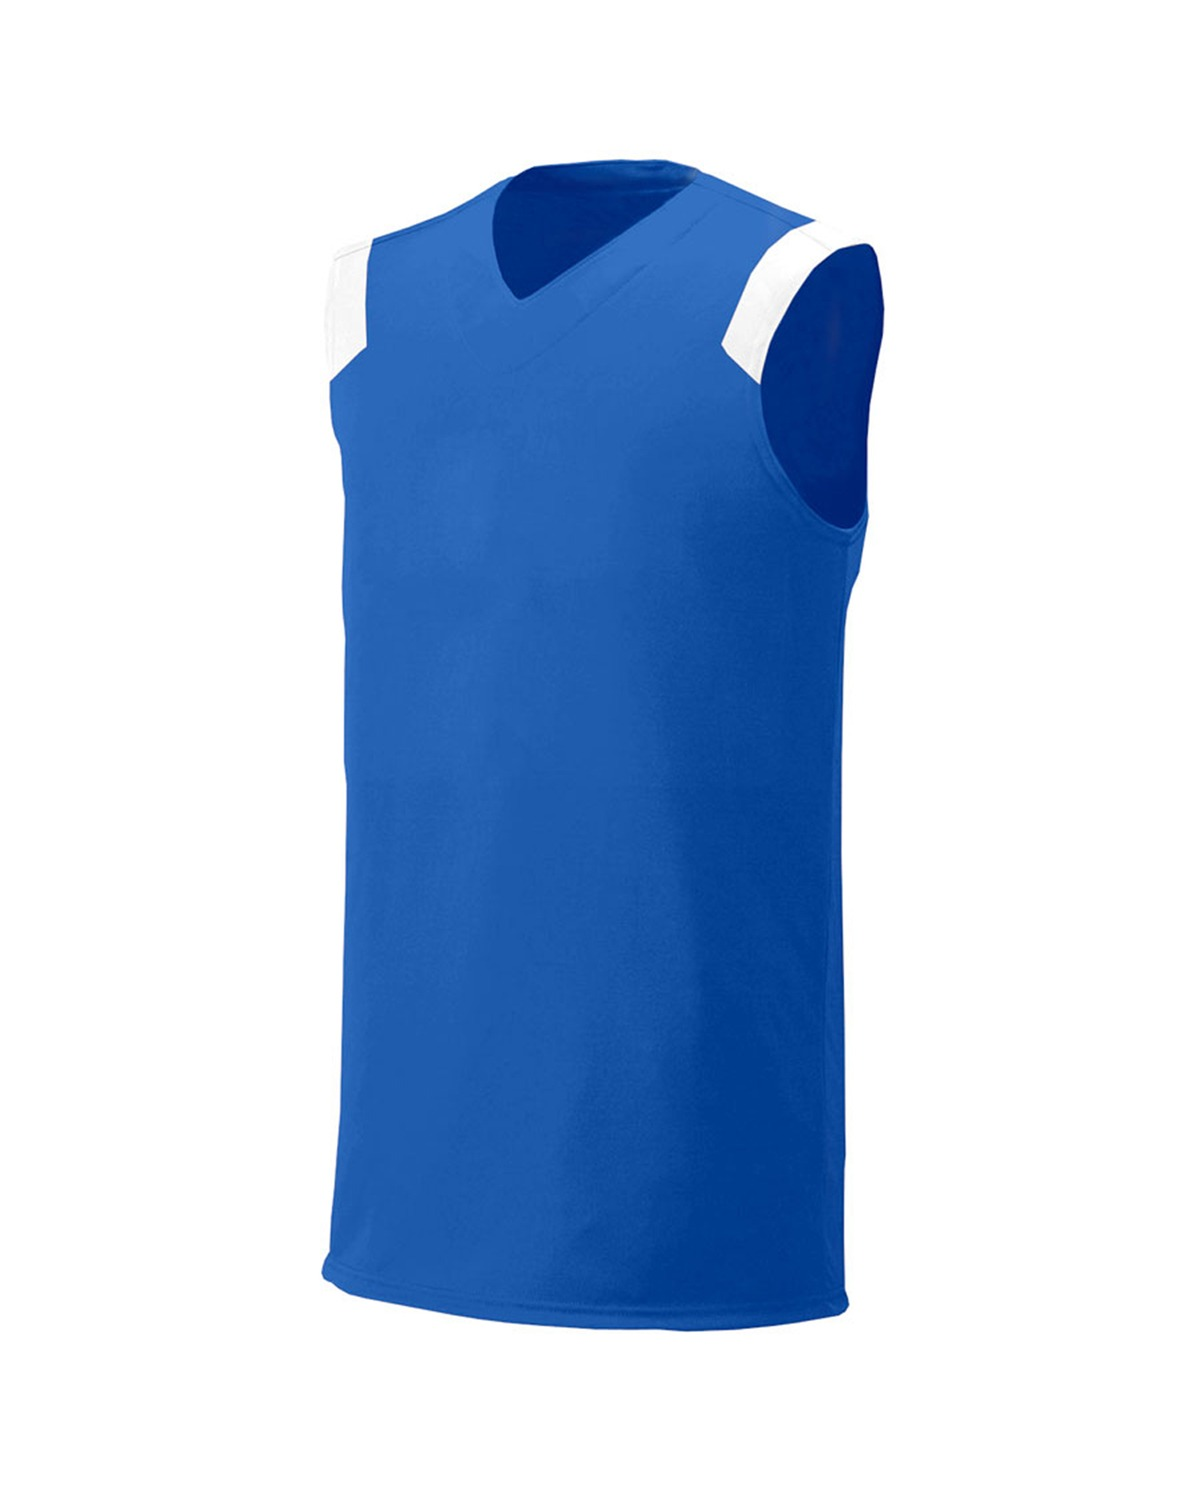 A4 Drop Ship - NB2340 Youth V-Neck Muscle Tee